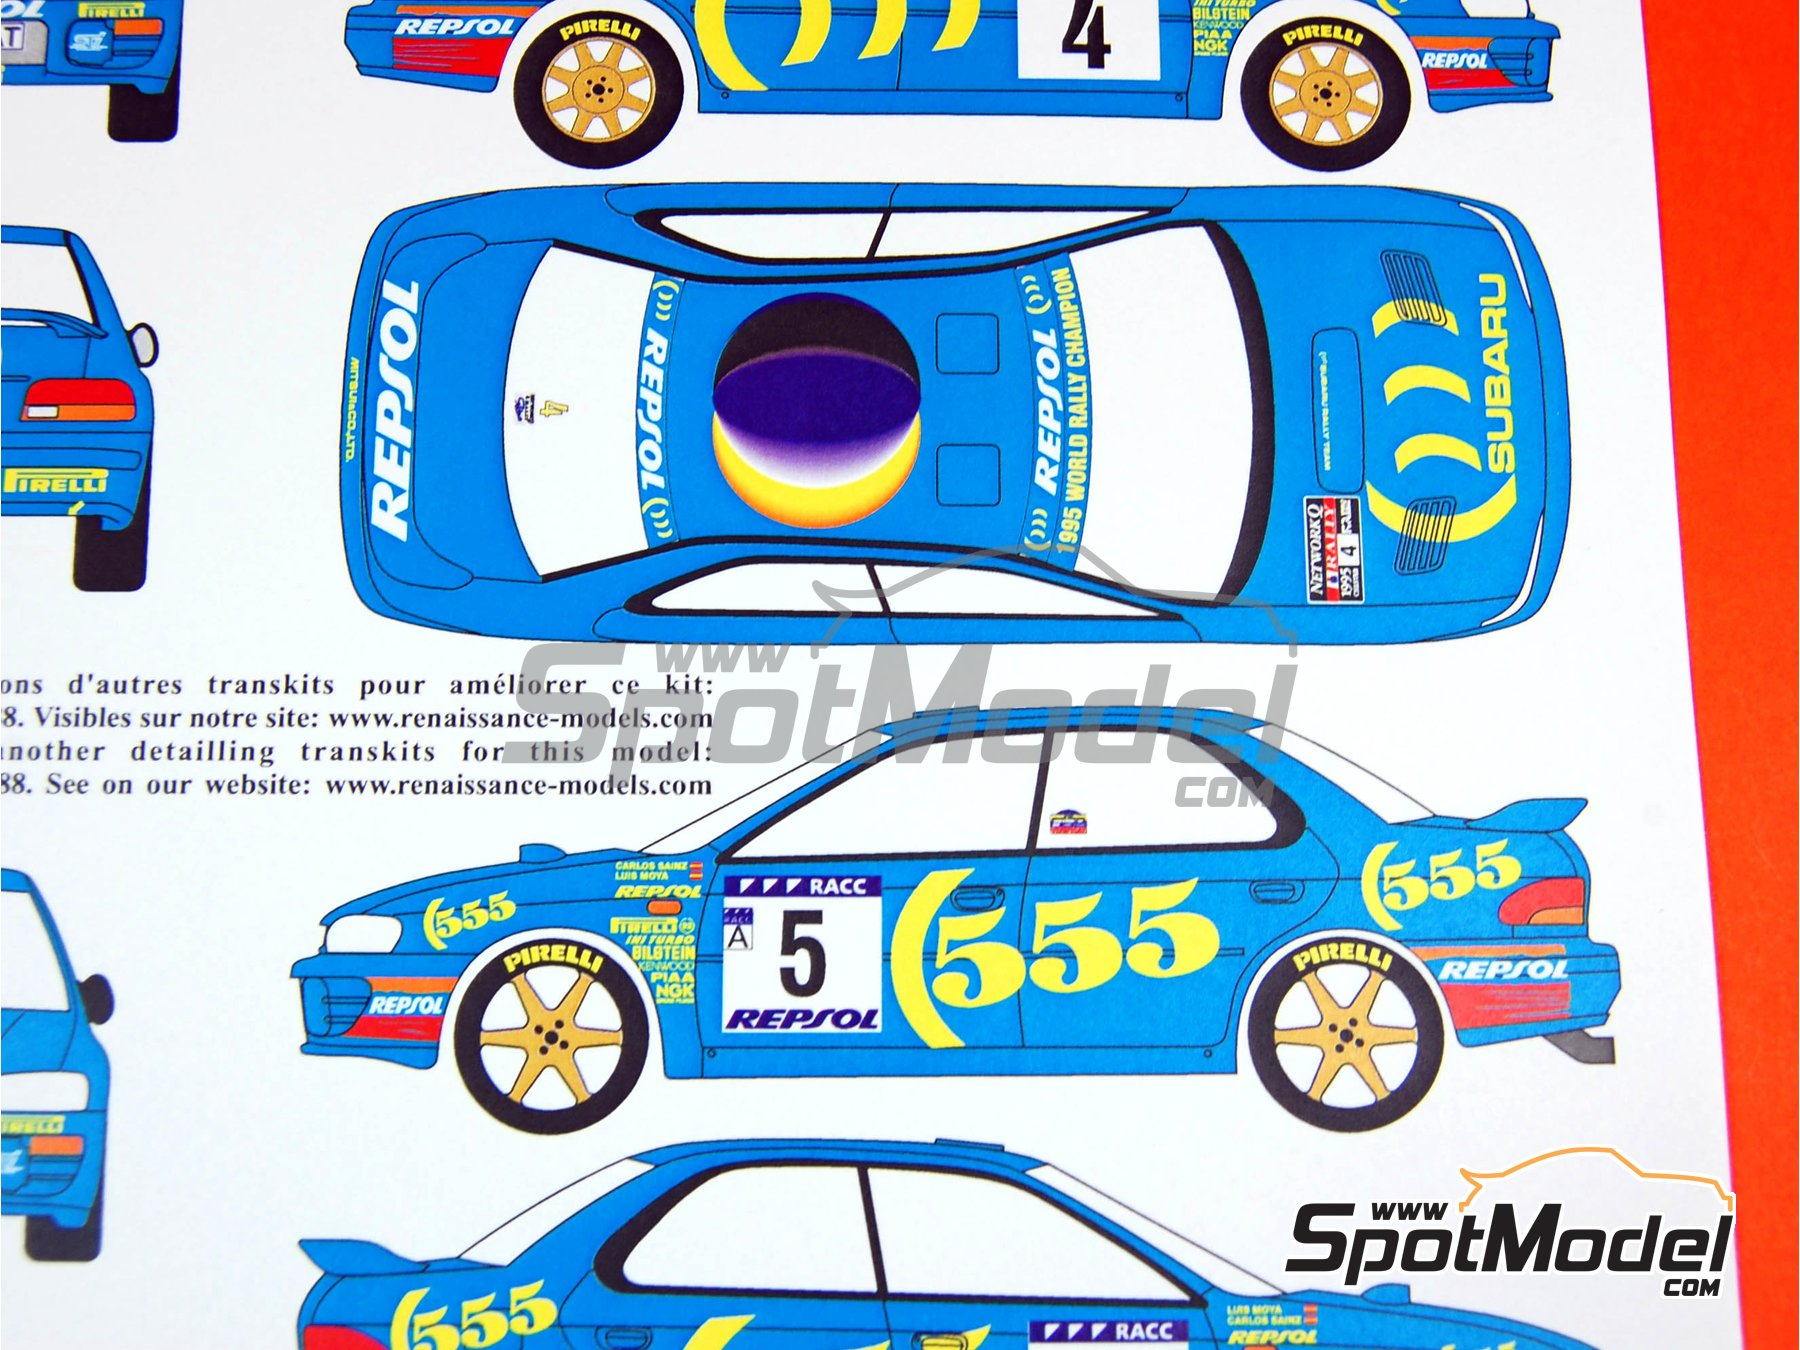 Image 4: Subaru Impreza 555 Group A Repsol - Catalunya Costa Dorada RACC Rally, RAC Rally 1995 | Marking / livery in 1/24 scale manufactured by Renaissance Models (ref. TK24-289)